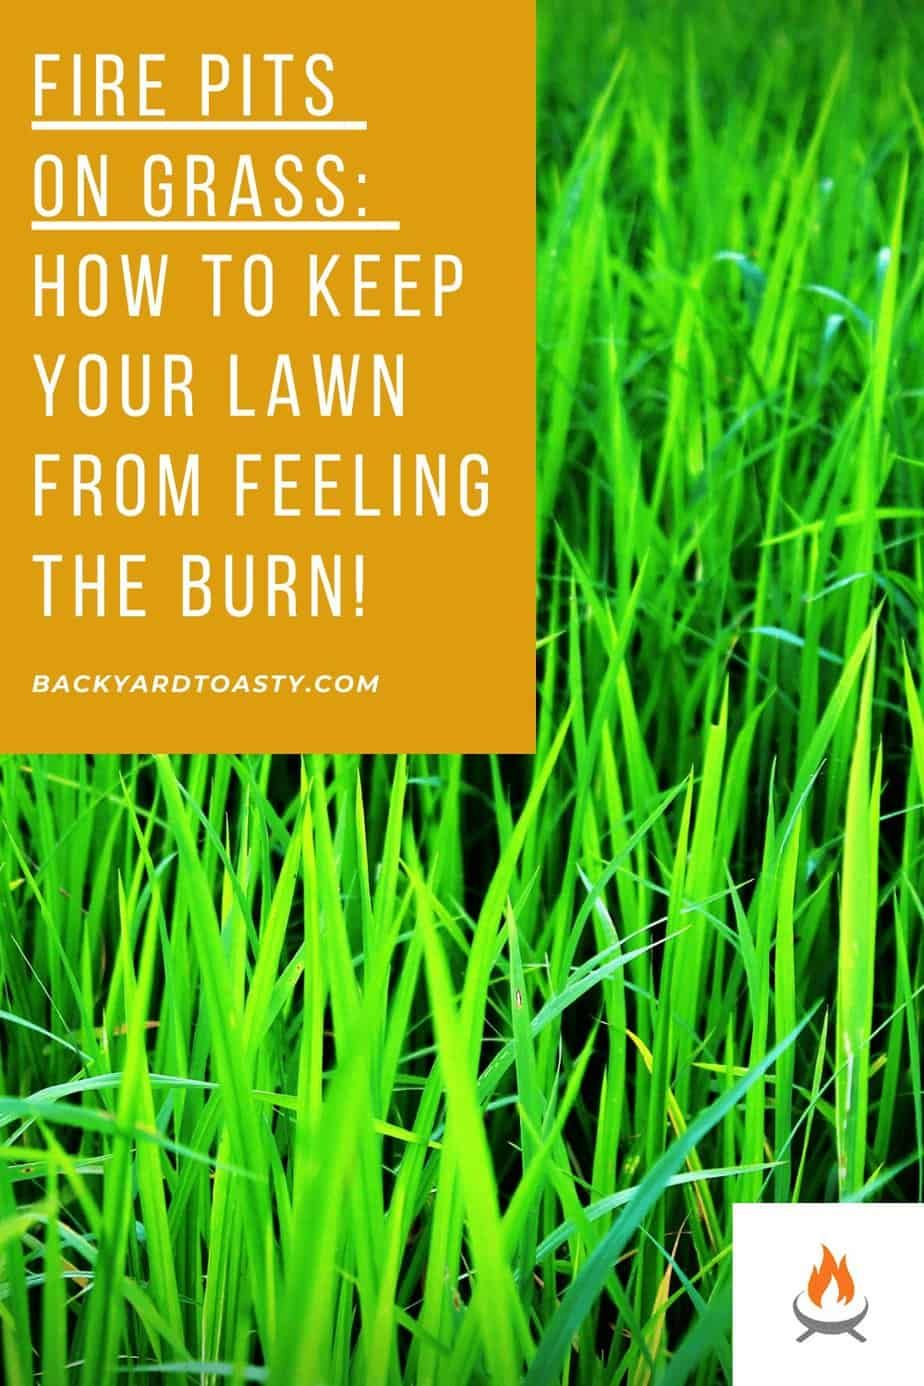 Fire Pits On Grass How To Keep Your Lawn From Feeling The Burn 1